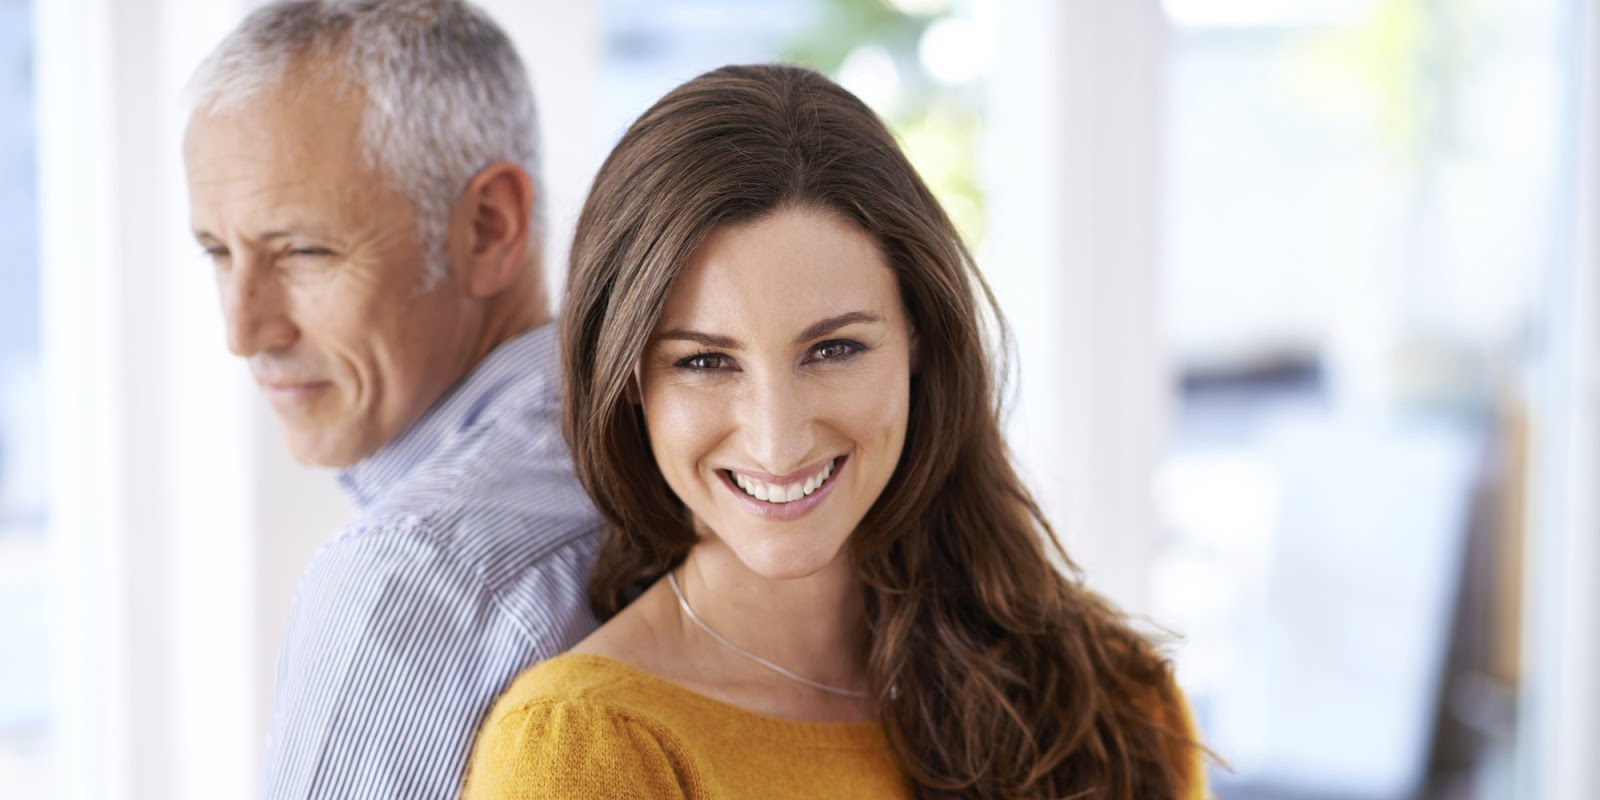 Advice for dating an older man